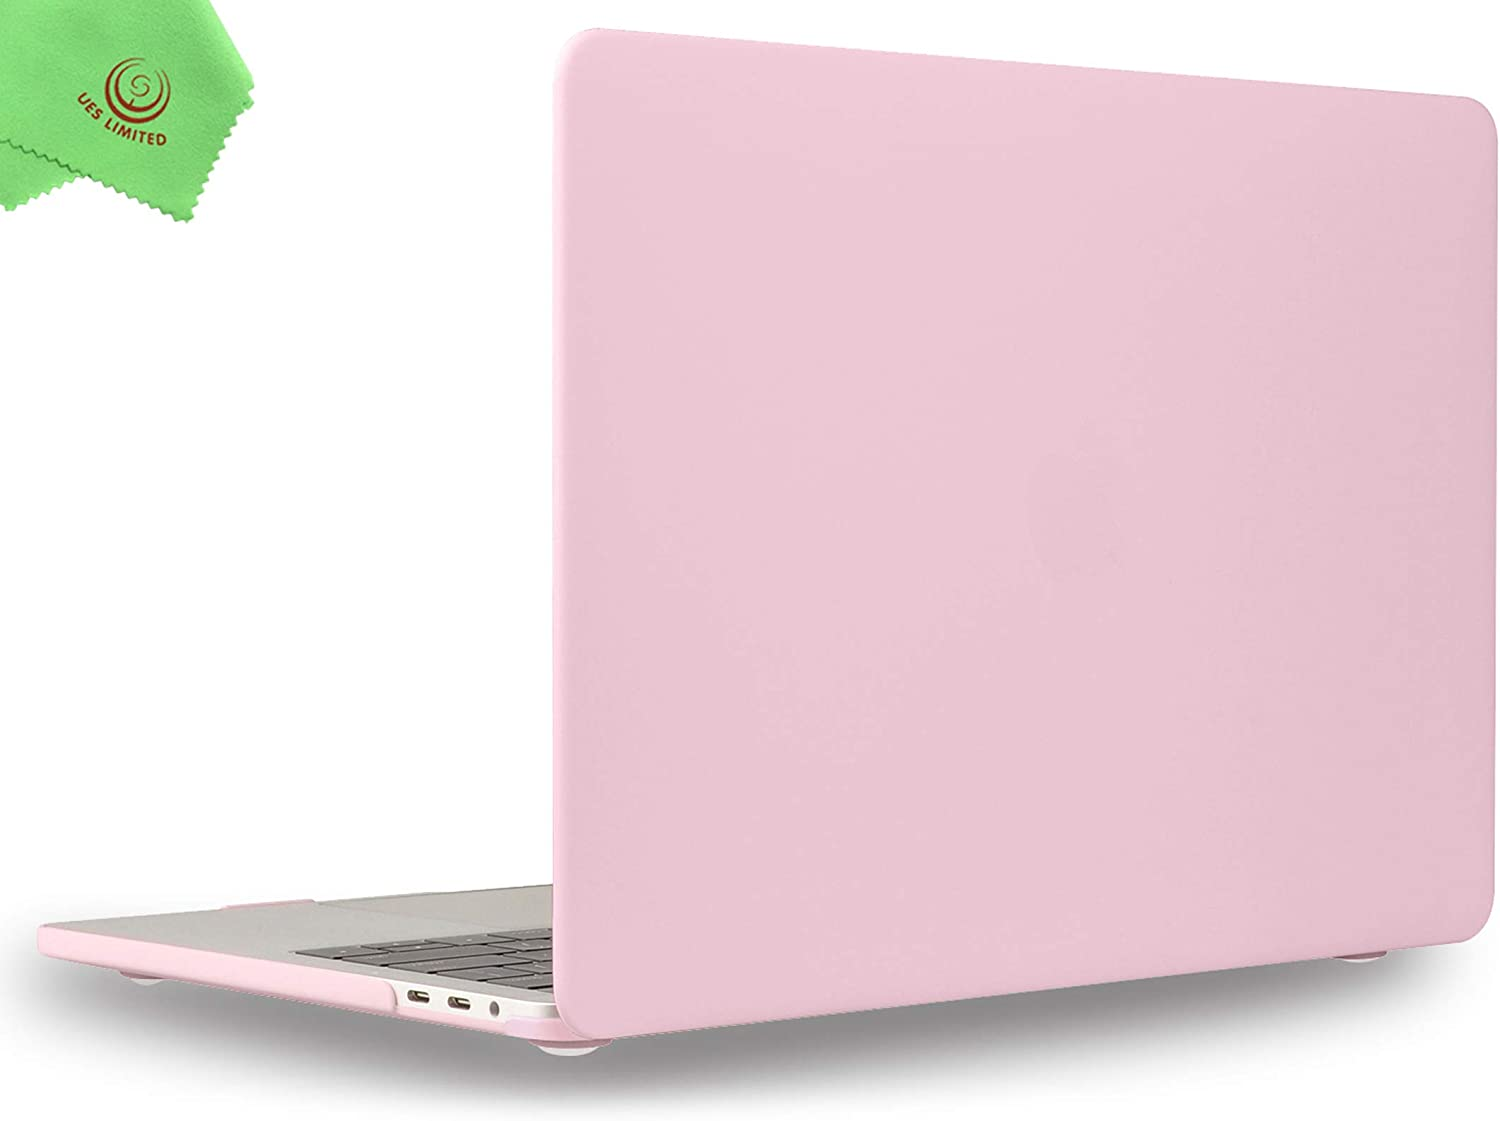 UESWILL MacBook Pro 15 inch Case 2019 2018 2017 2016 Release Model A1990 A1707, Smooth Matte Hard Case for MacBook Pro 15 inch with Touch Bar & USB-C, Rose Quartz